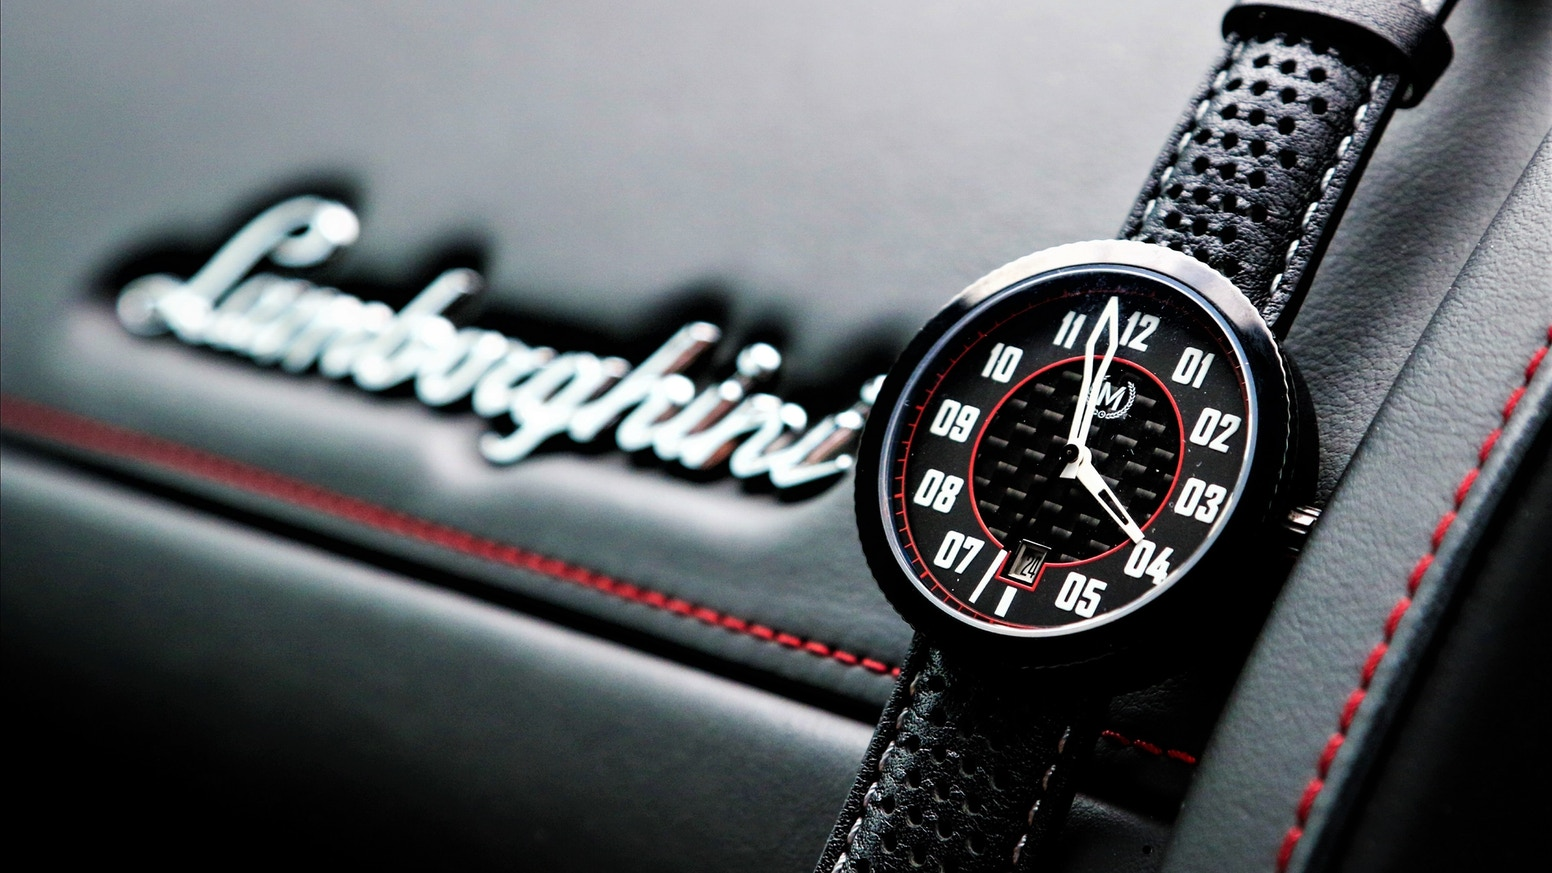 Designed by racers for racers, the chequered racing inspired Legacy is the first automatic watch by Marchand.